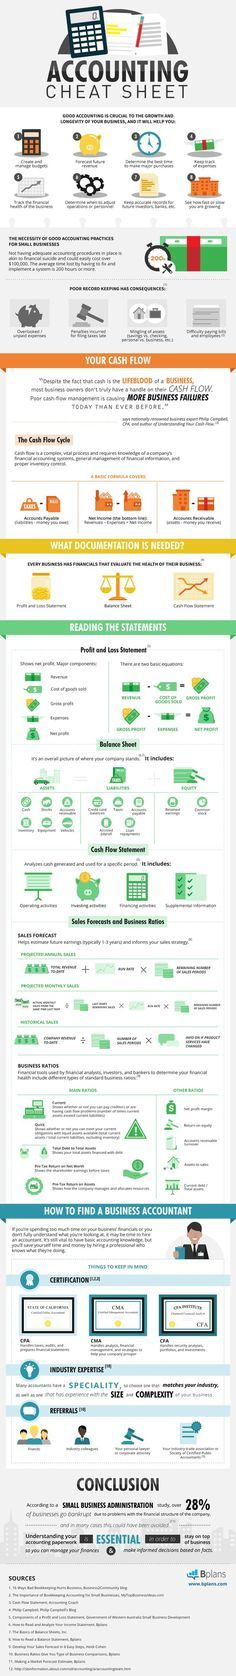 9 best Accounting images on Pinterest Accounting, Beekeeping and